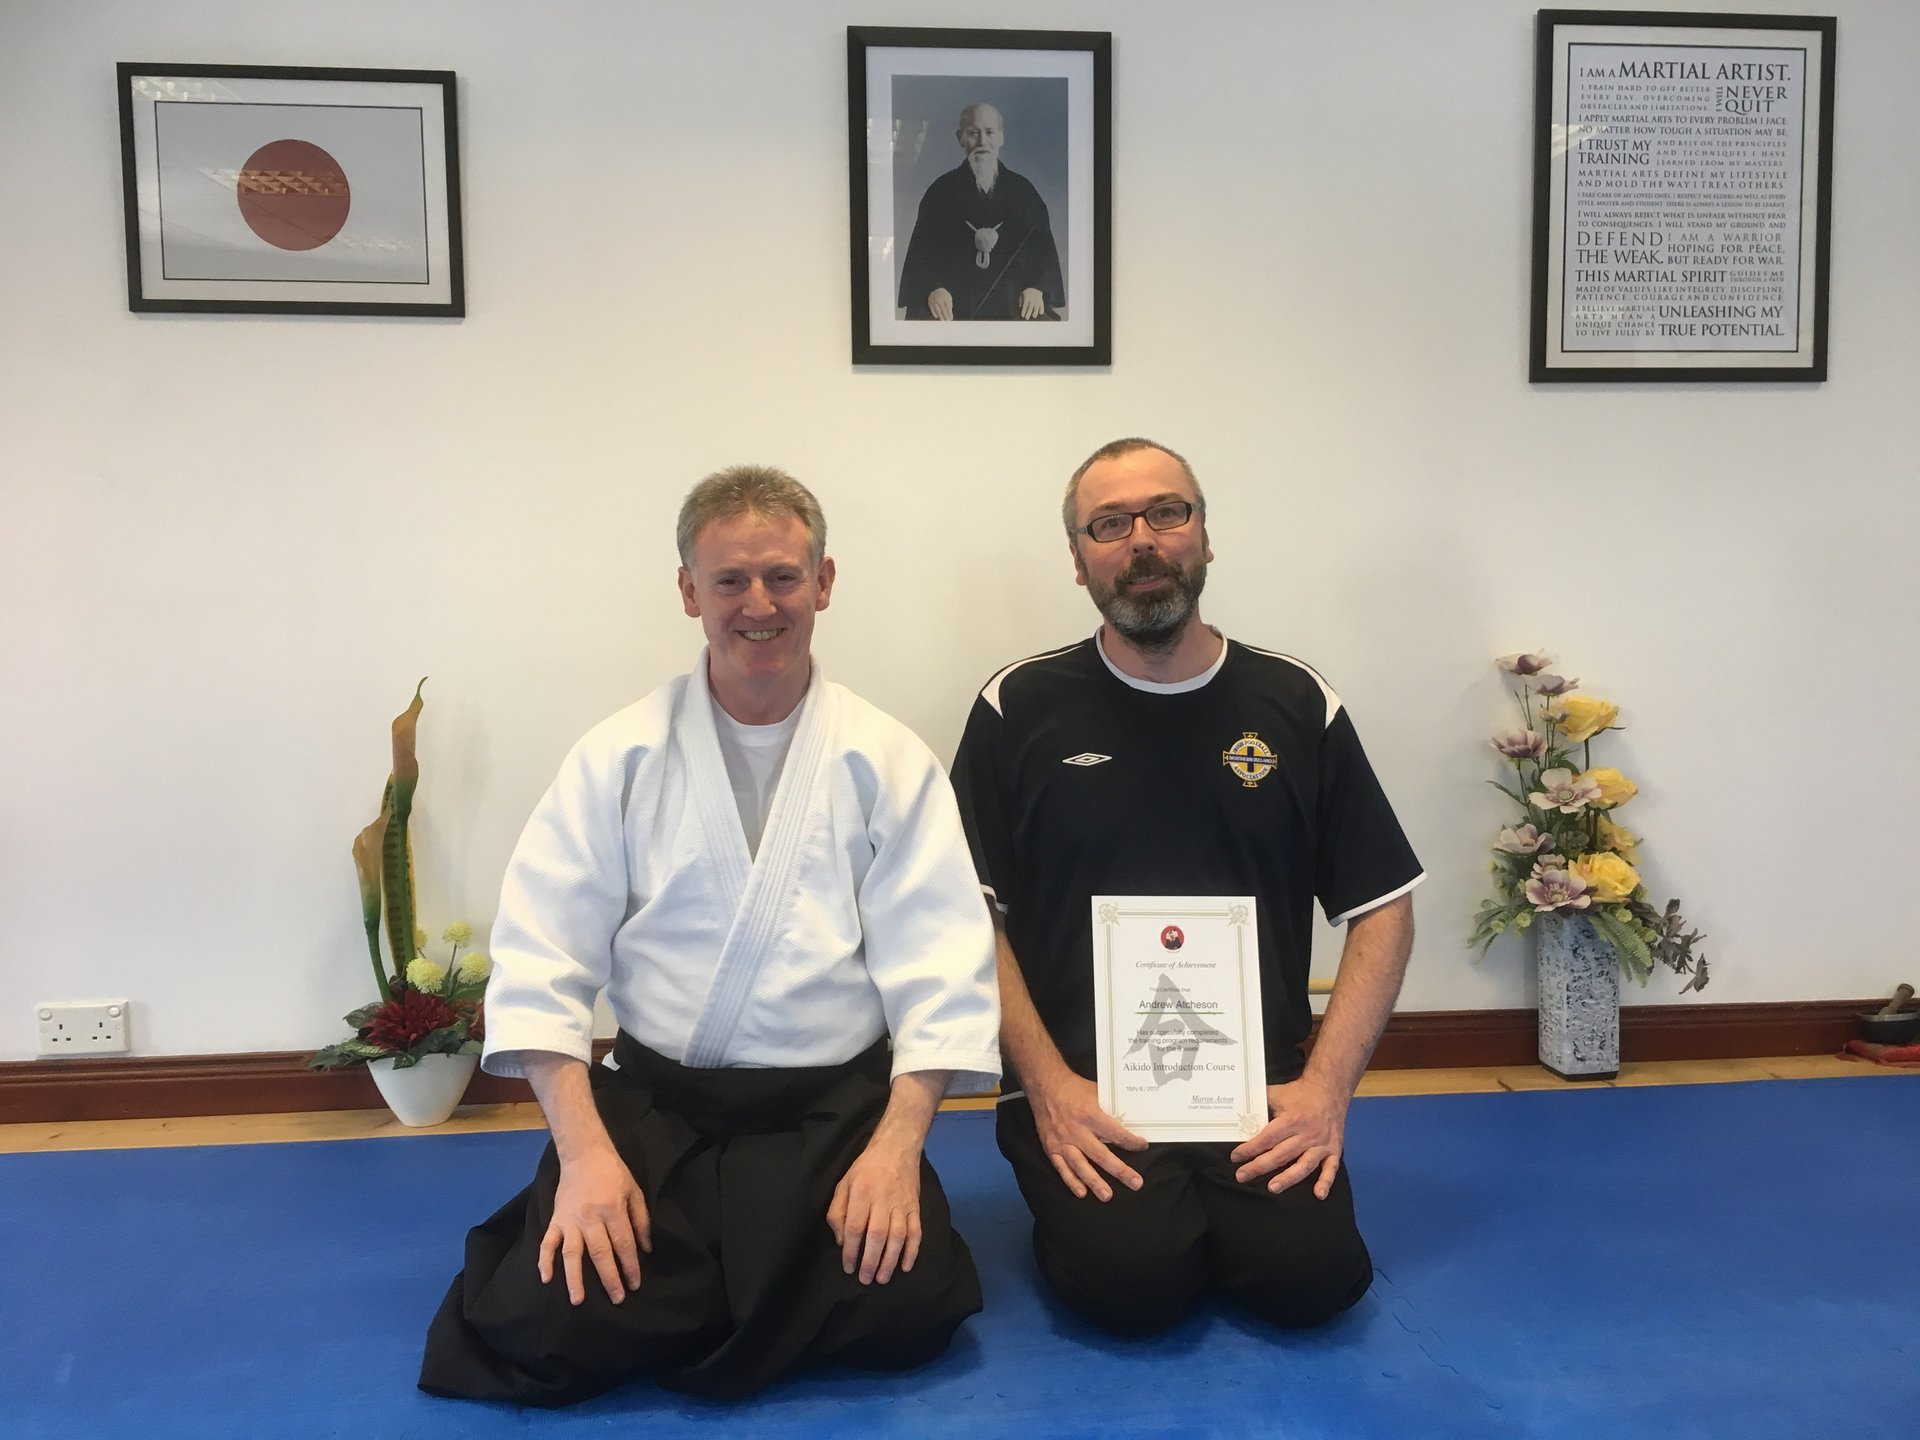 Andrew Atcheson receiving his Aikido 8-week Introduction certification with Martin Acton sensei 15.6.2017 at Martin Acton's Aikido Institute